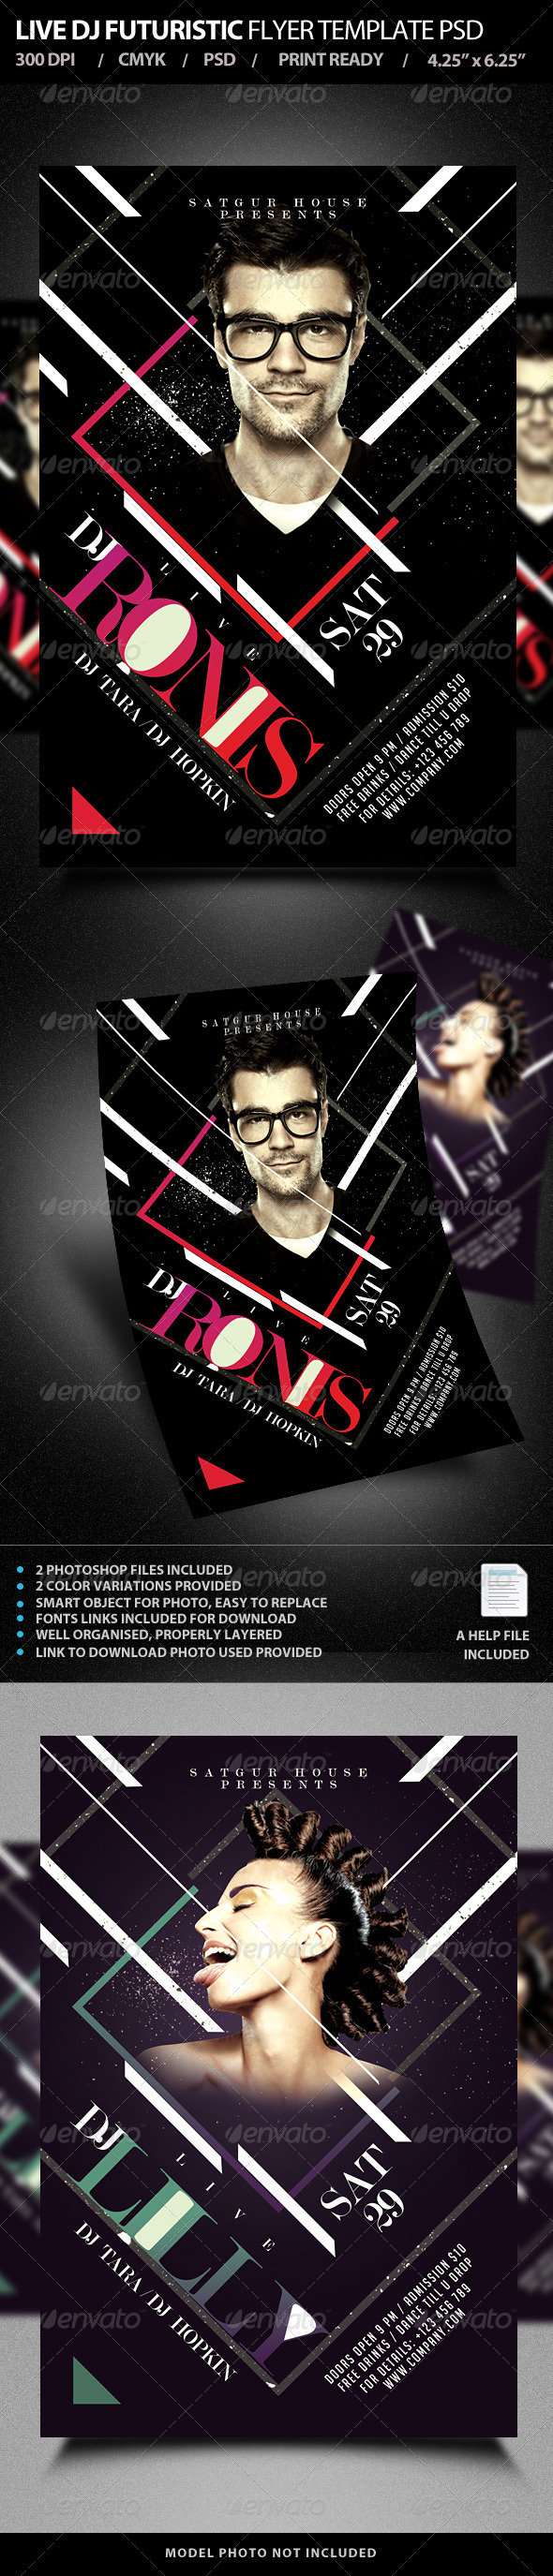 GraphicRiver Live DJ Flyer Template PSD V2 7548399